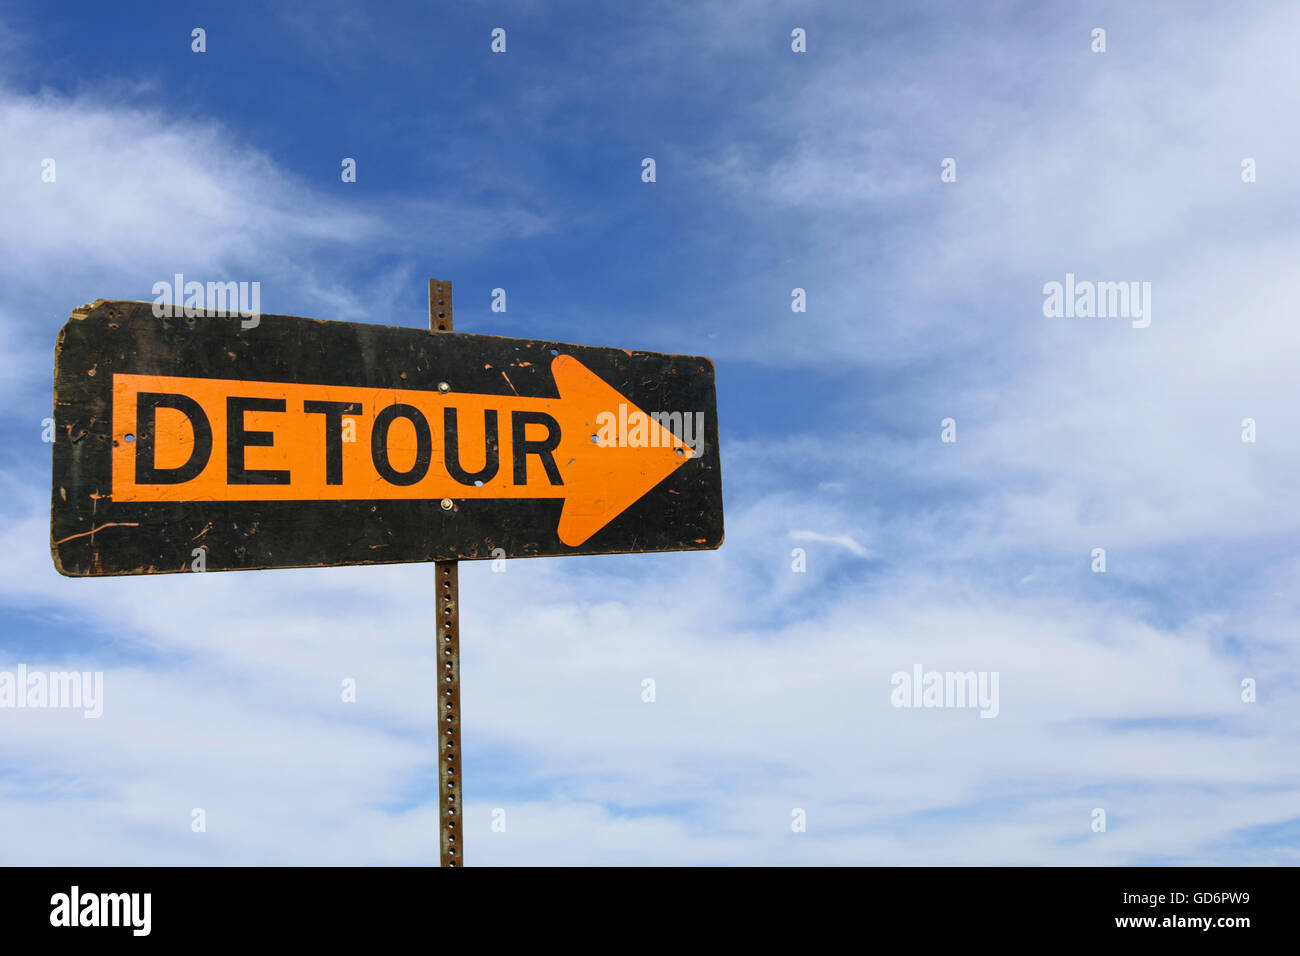 Bold orange and black detour sign with wispy clouds in summer sky. - Stock Image